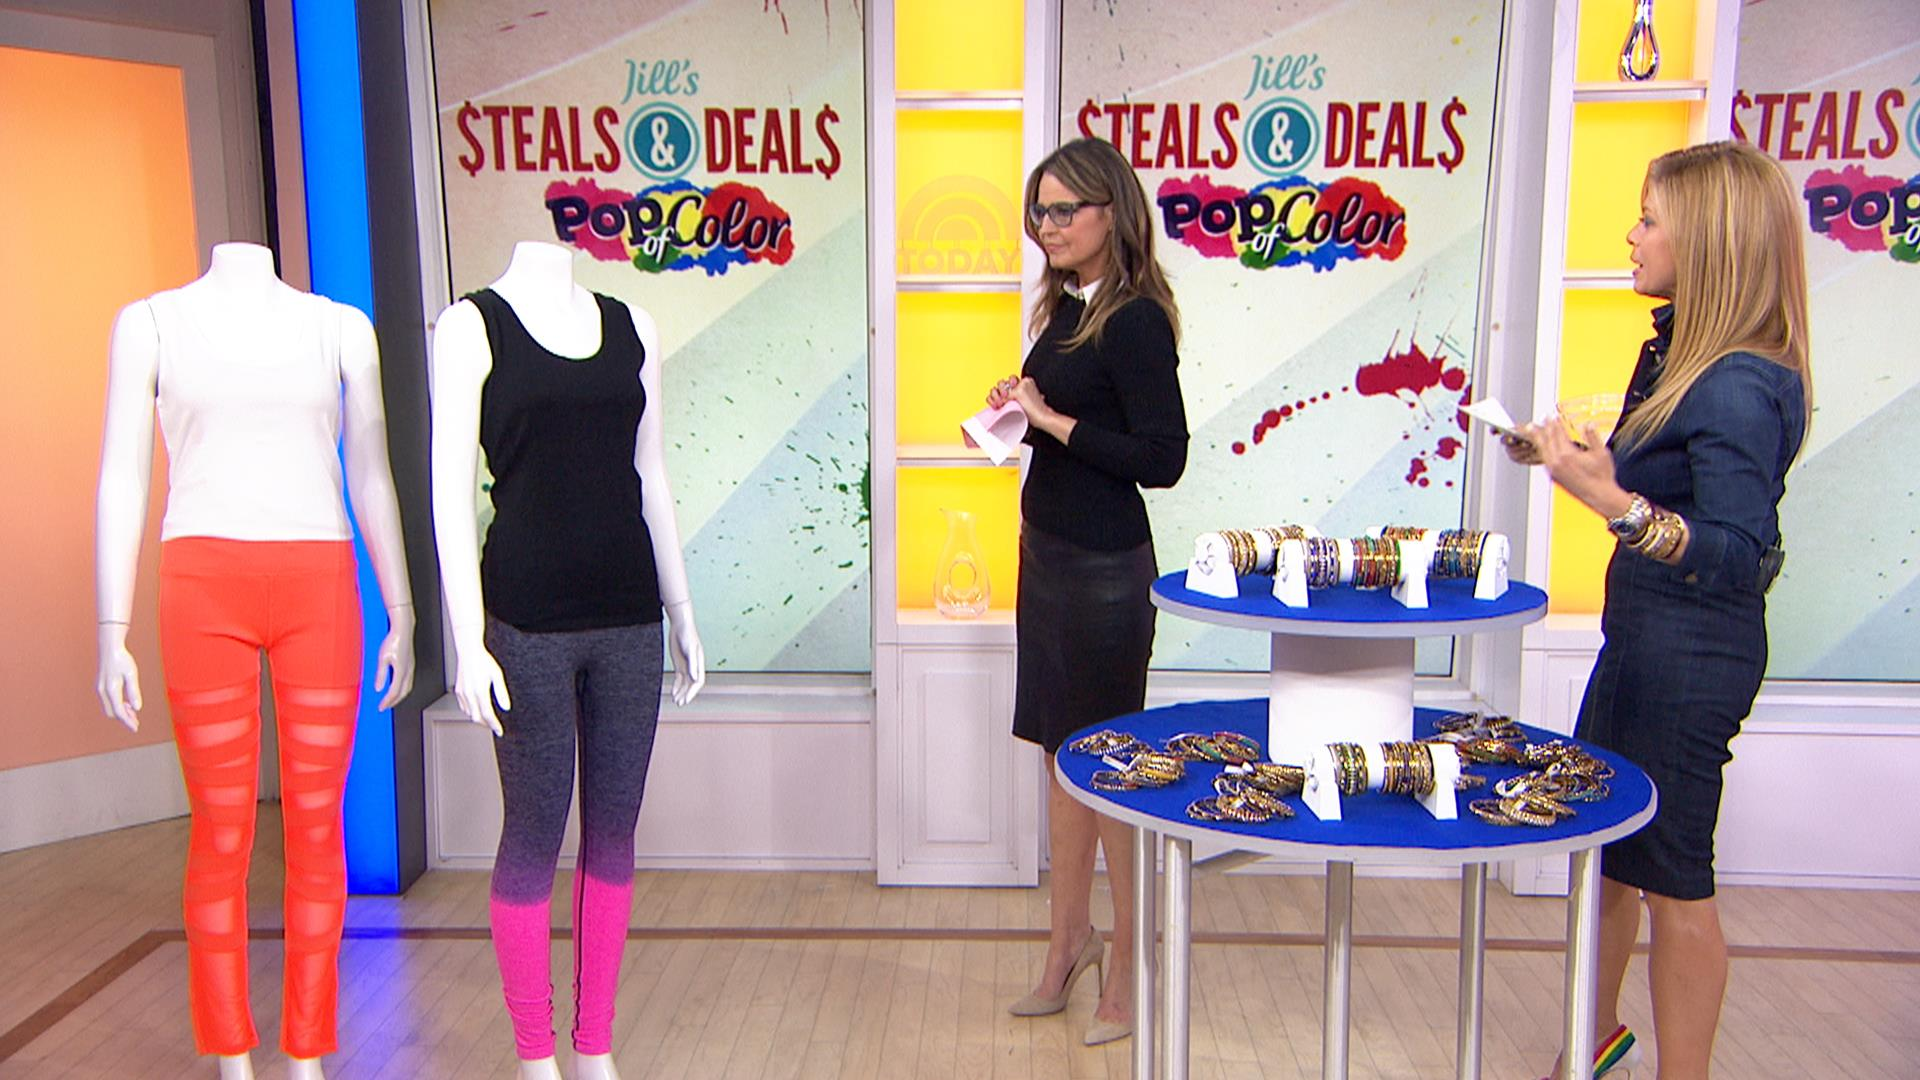 Msnbc today show jill's steals and deals